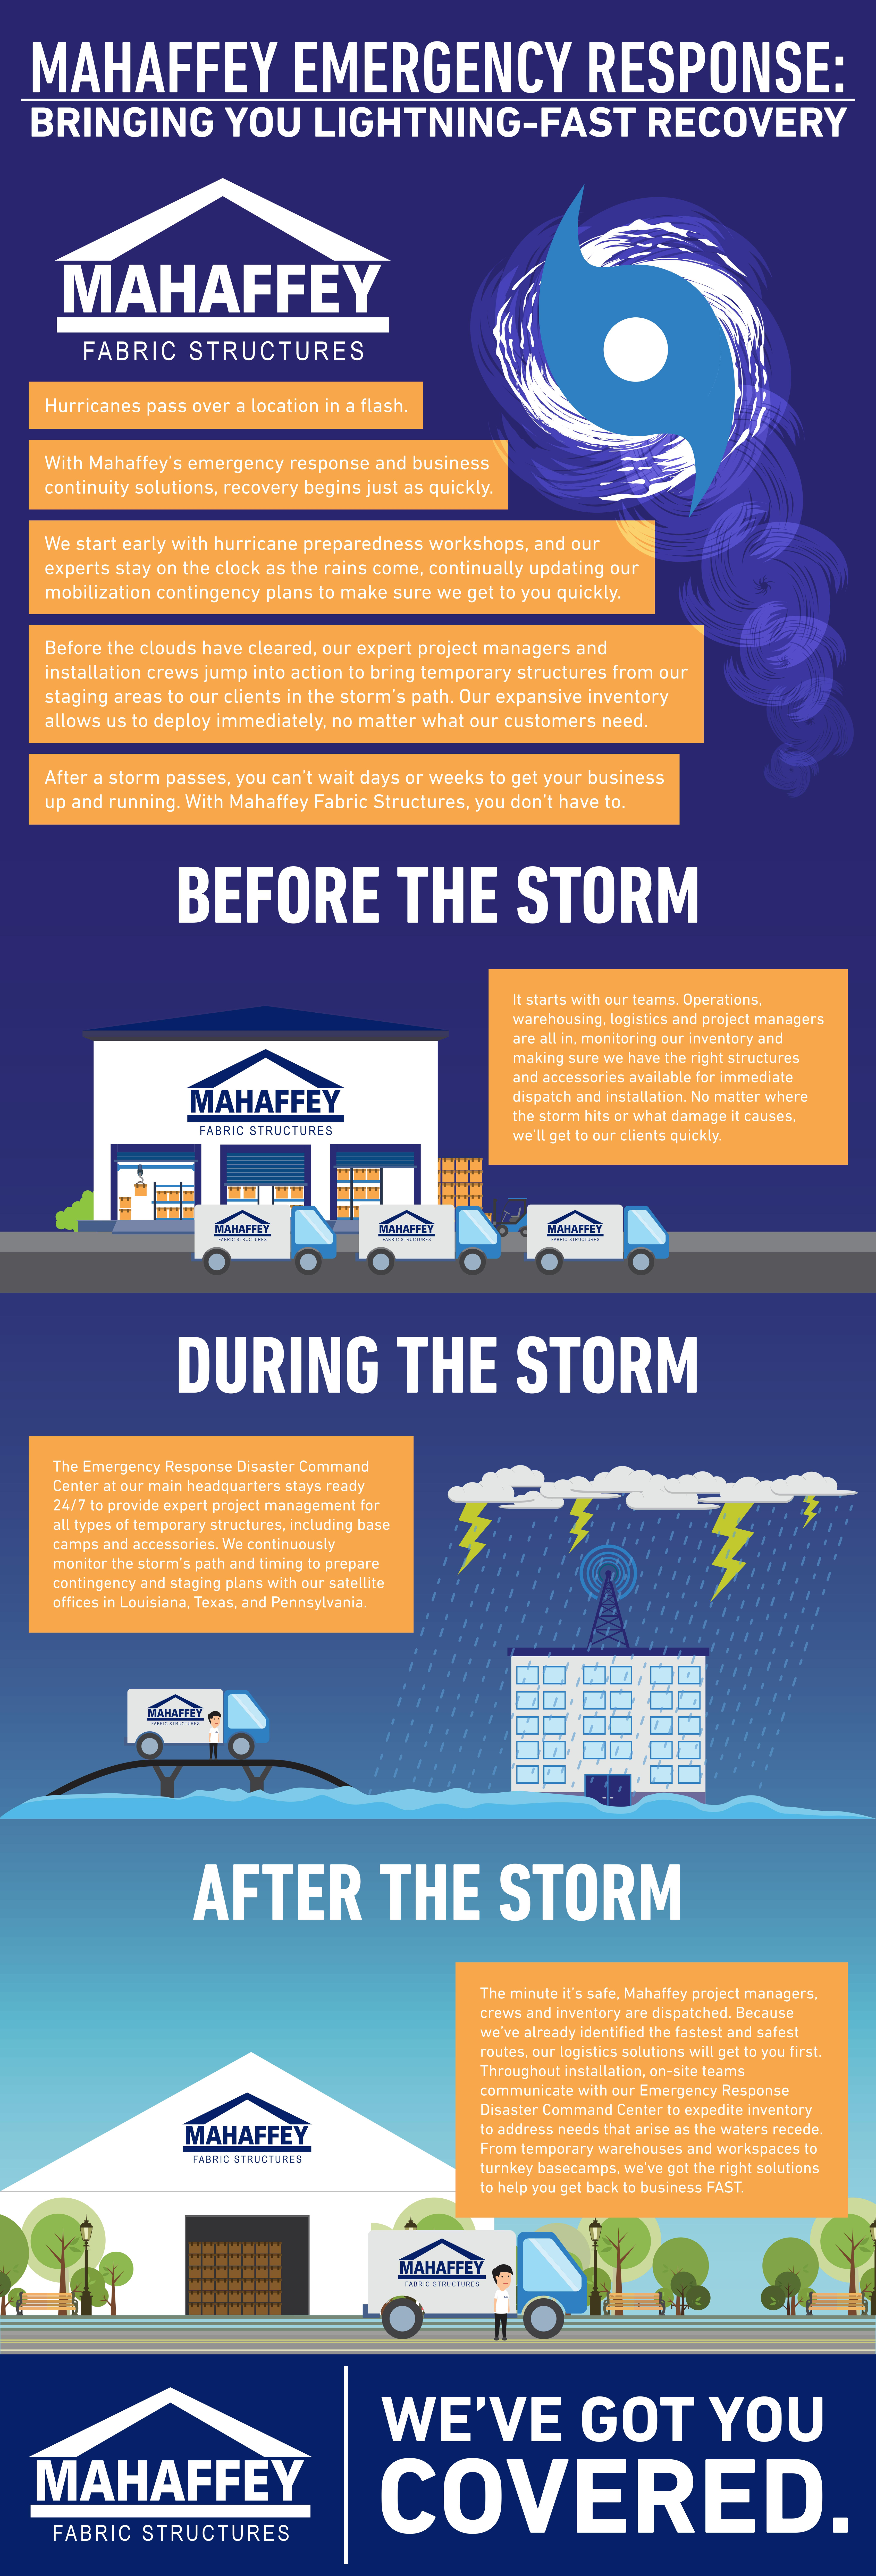 Mahaffey Emergency Response Infographic | Base Camp and Business Continuity Solutions for Hurricanes and Large Storms